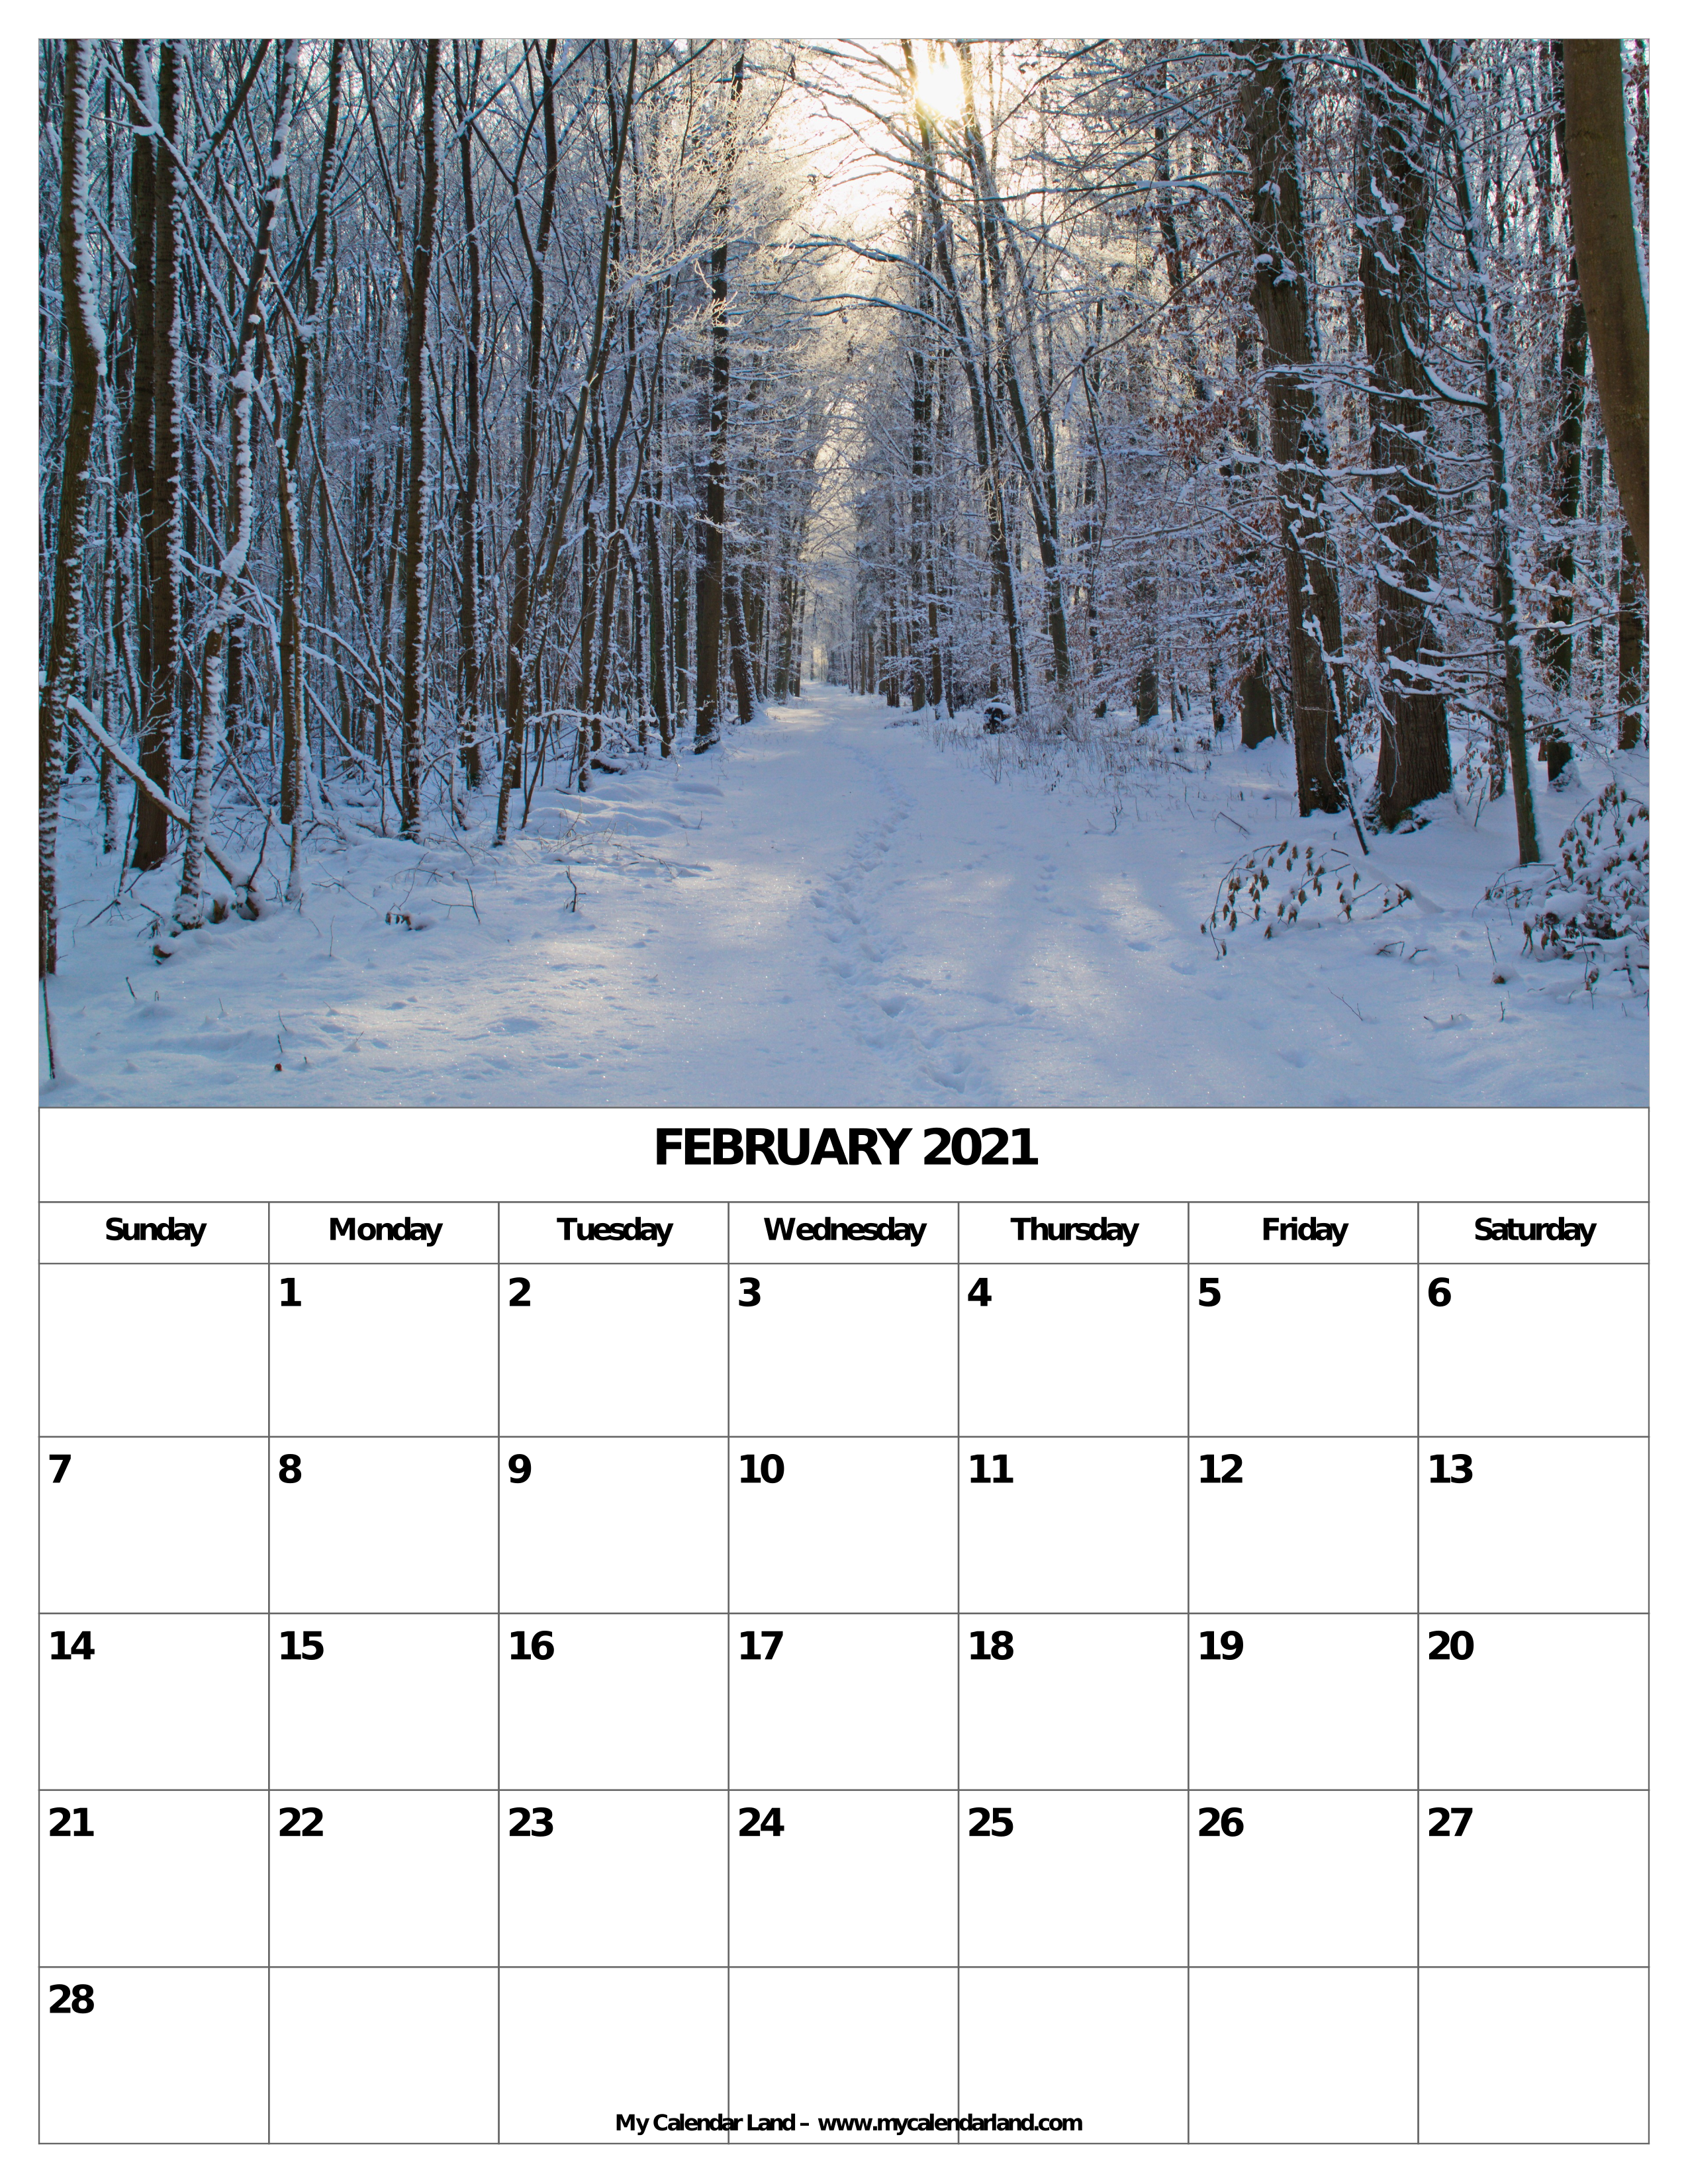 February 2021 Calendar Valentine 039 S Day Valentine 039 S Day Along With Chocolate